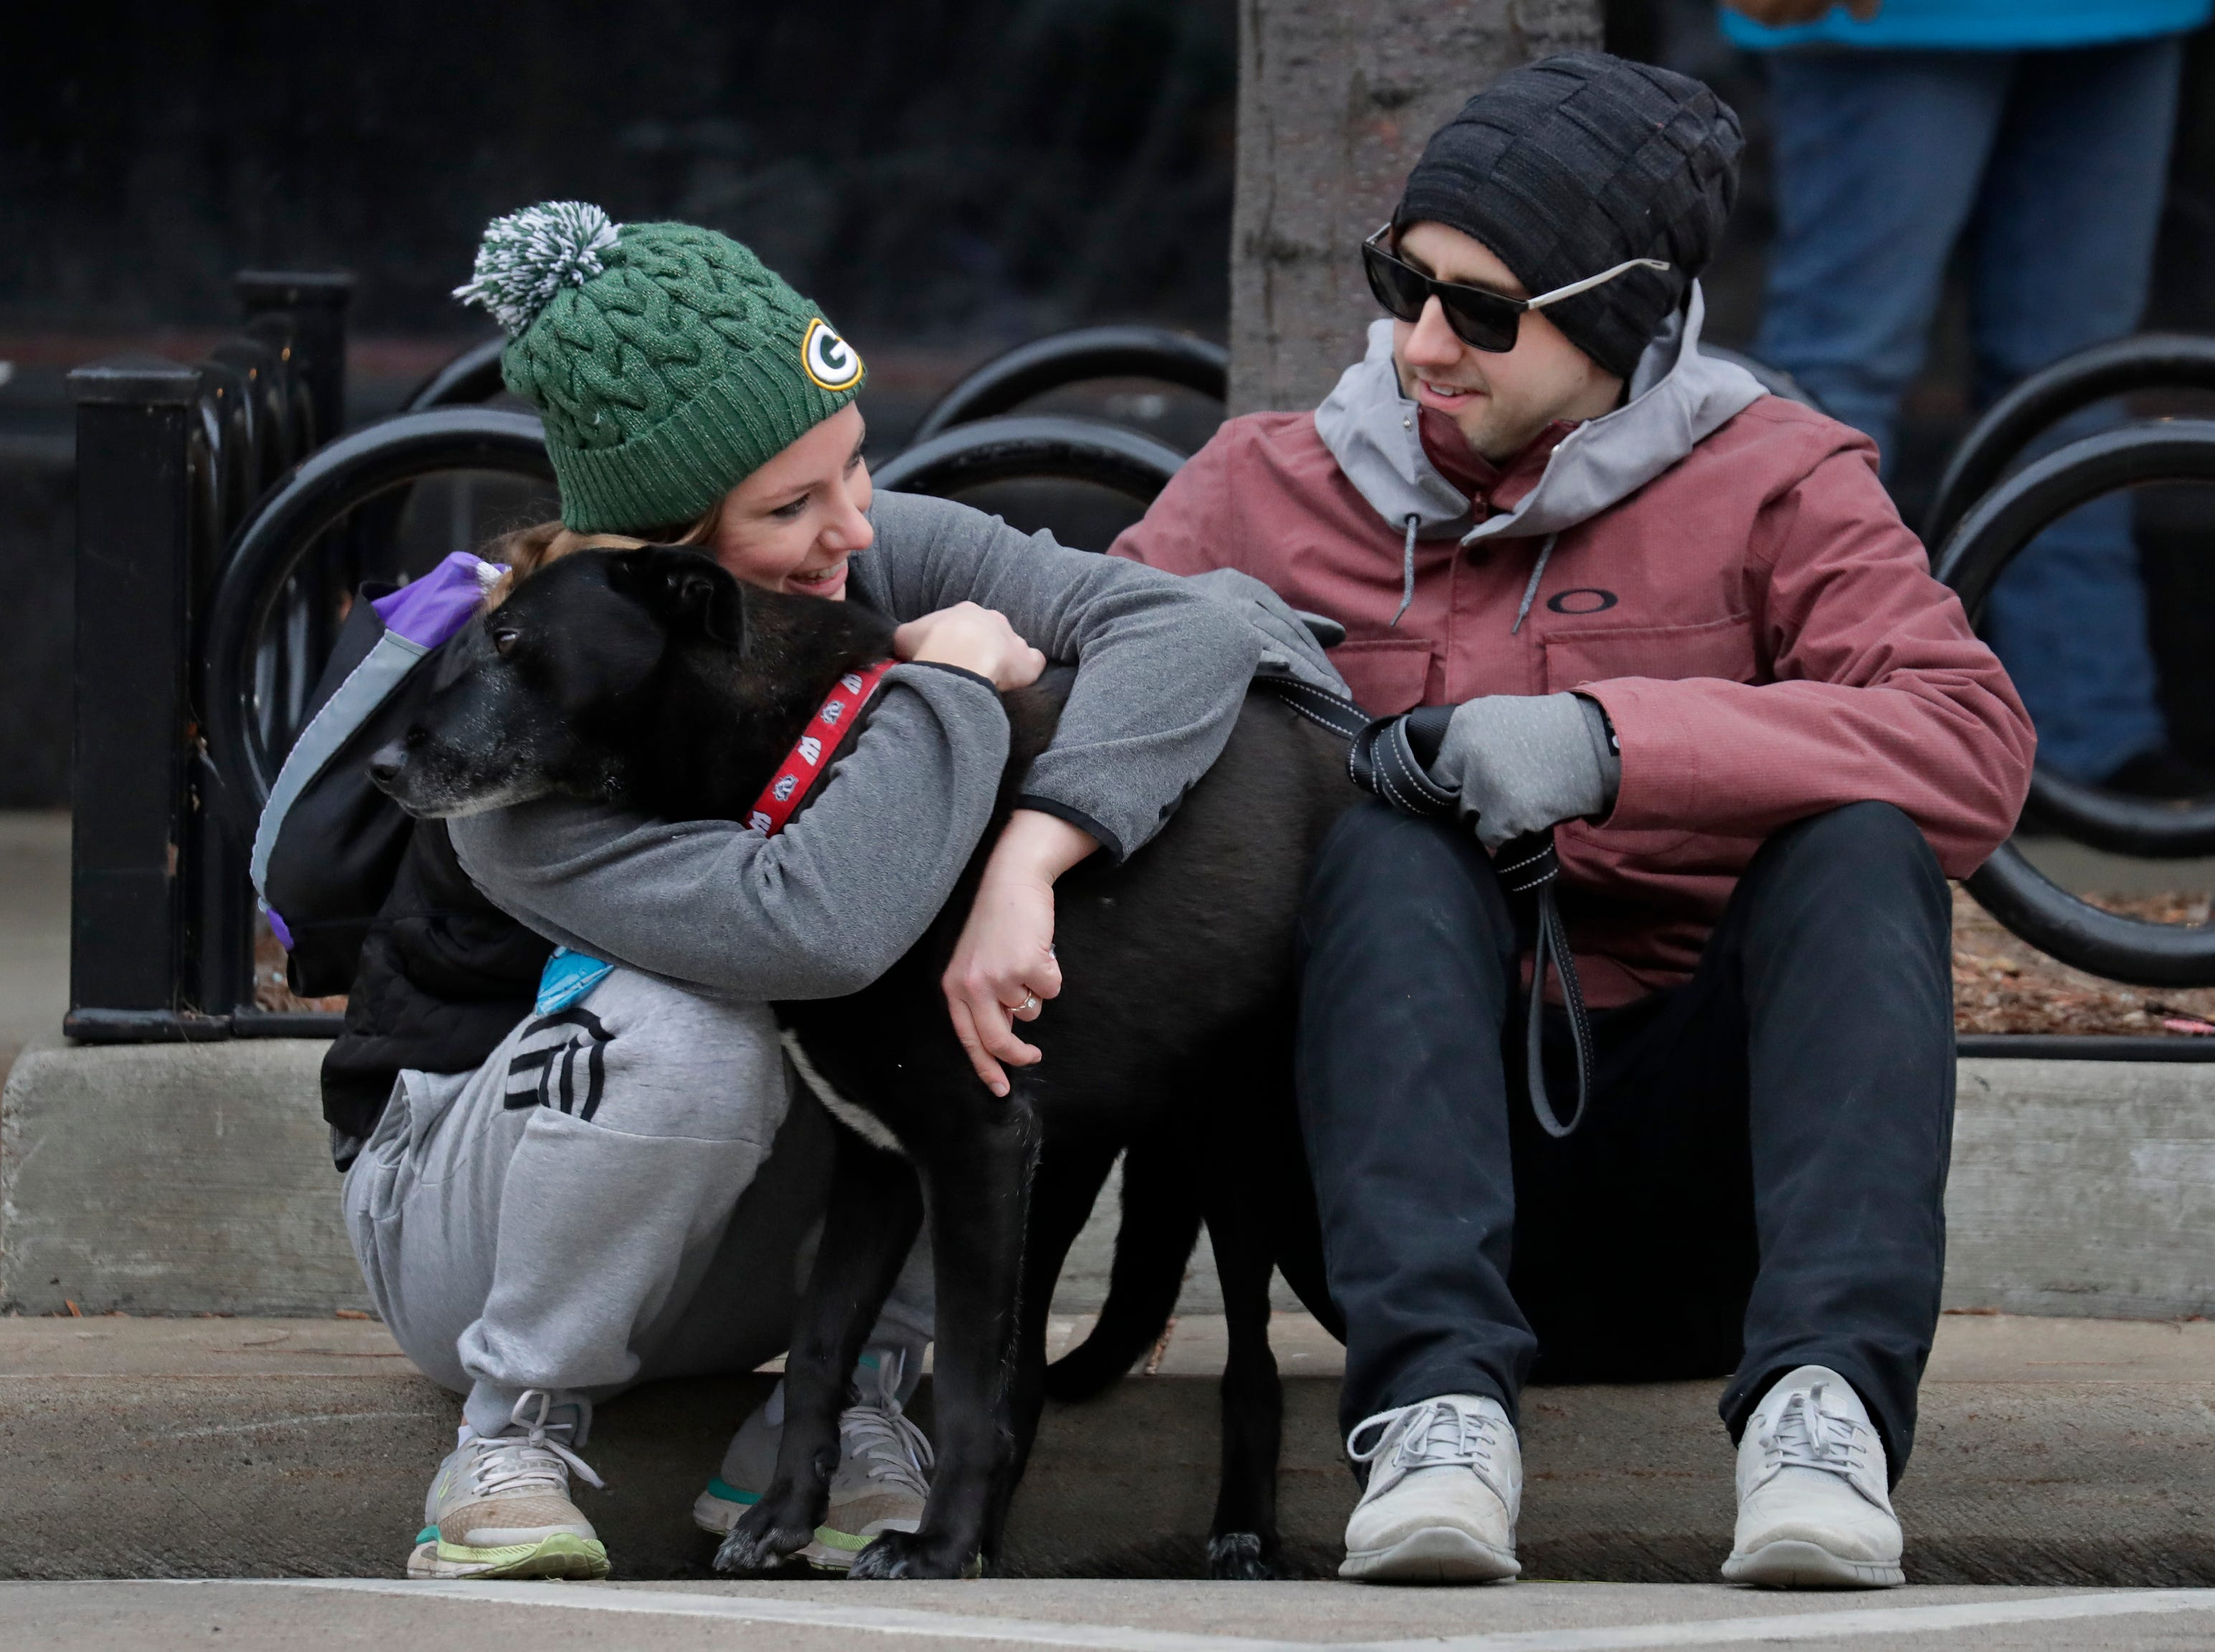 Jessica Becker, left, of Greenville, comforts her dog Buddy prior to running with him during the 11th Annual Festival Foods Turkey Trot Thursday, November 22, 2018, in Appleton, Wis. At right is Jessica's boyfriend David Herrmann of Appleton.Dan Powers/USA TODAY NETWORK-Wisconsin